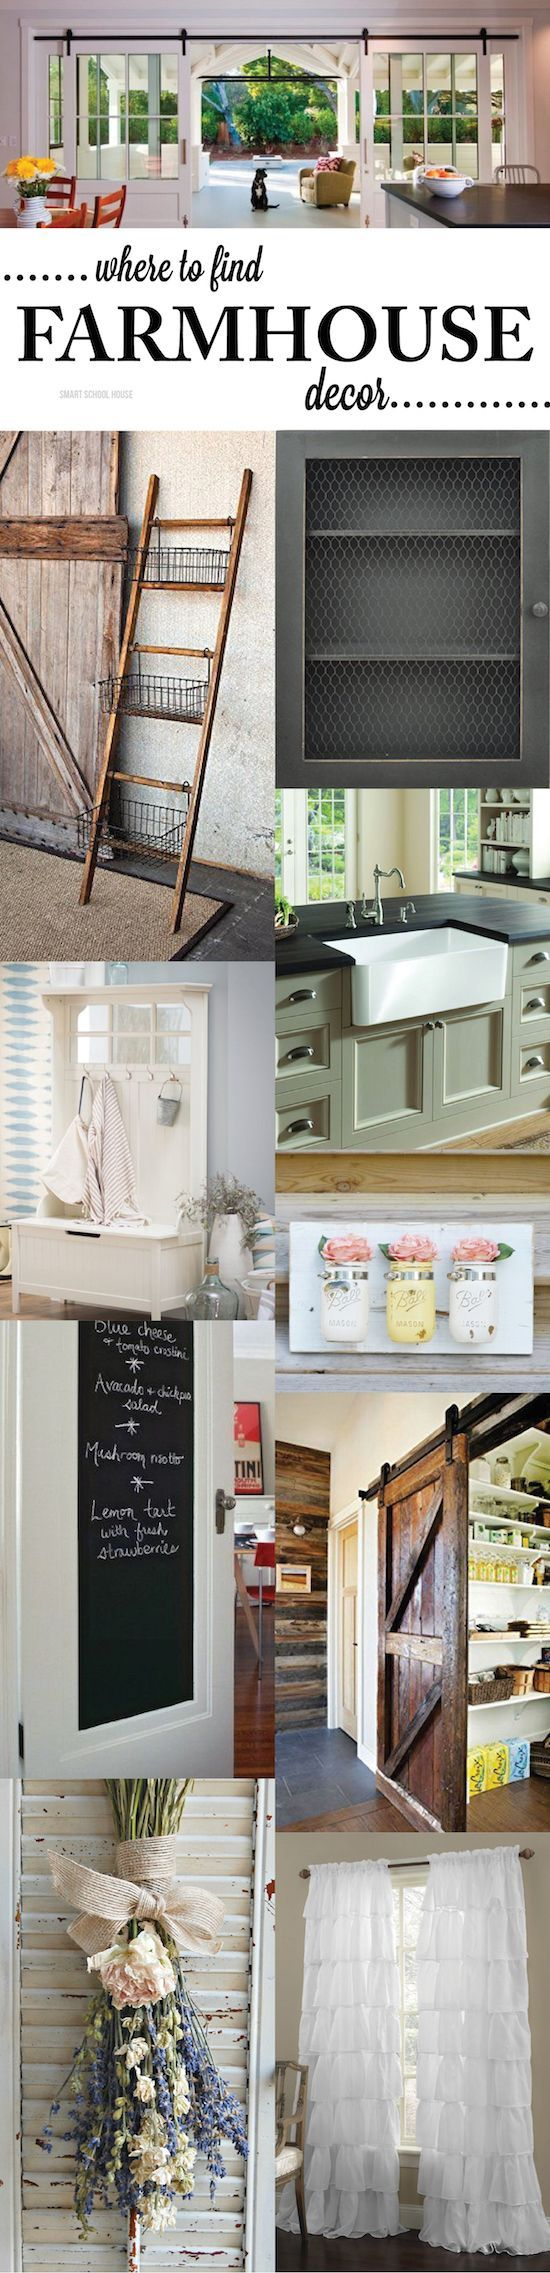 Where to find farmhouse decor! Tips and tricks for bringing farm house decor into your home!